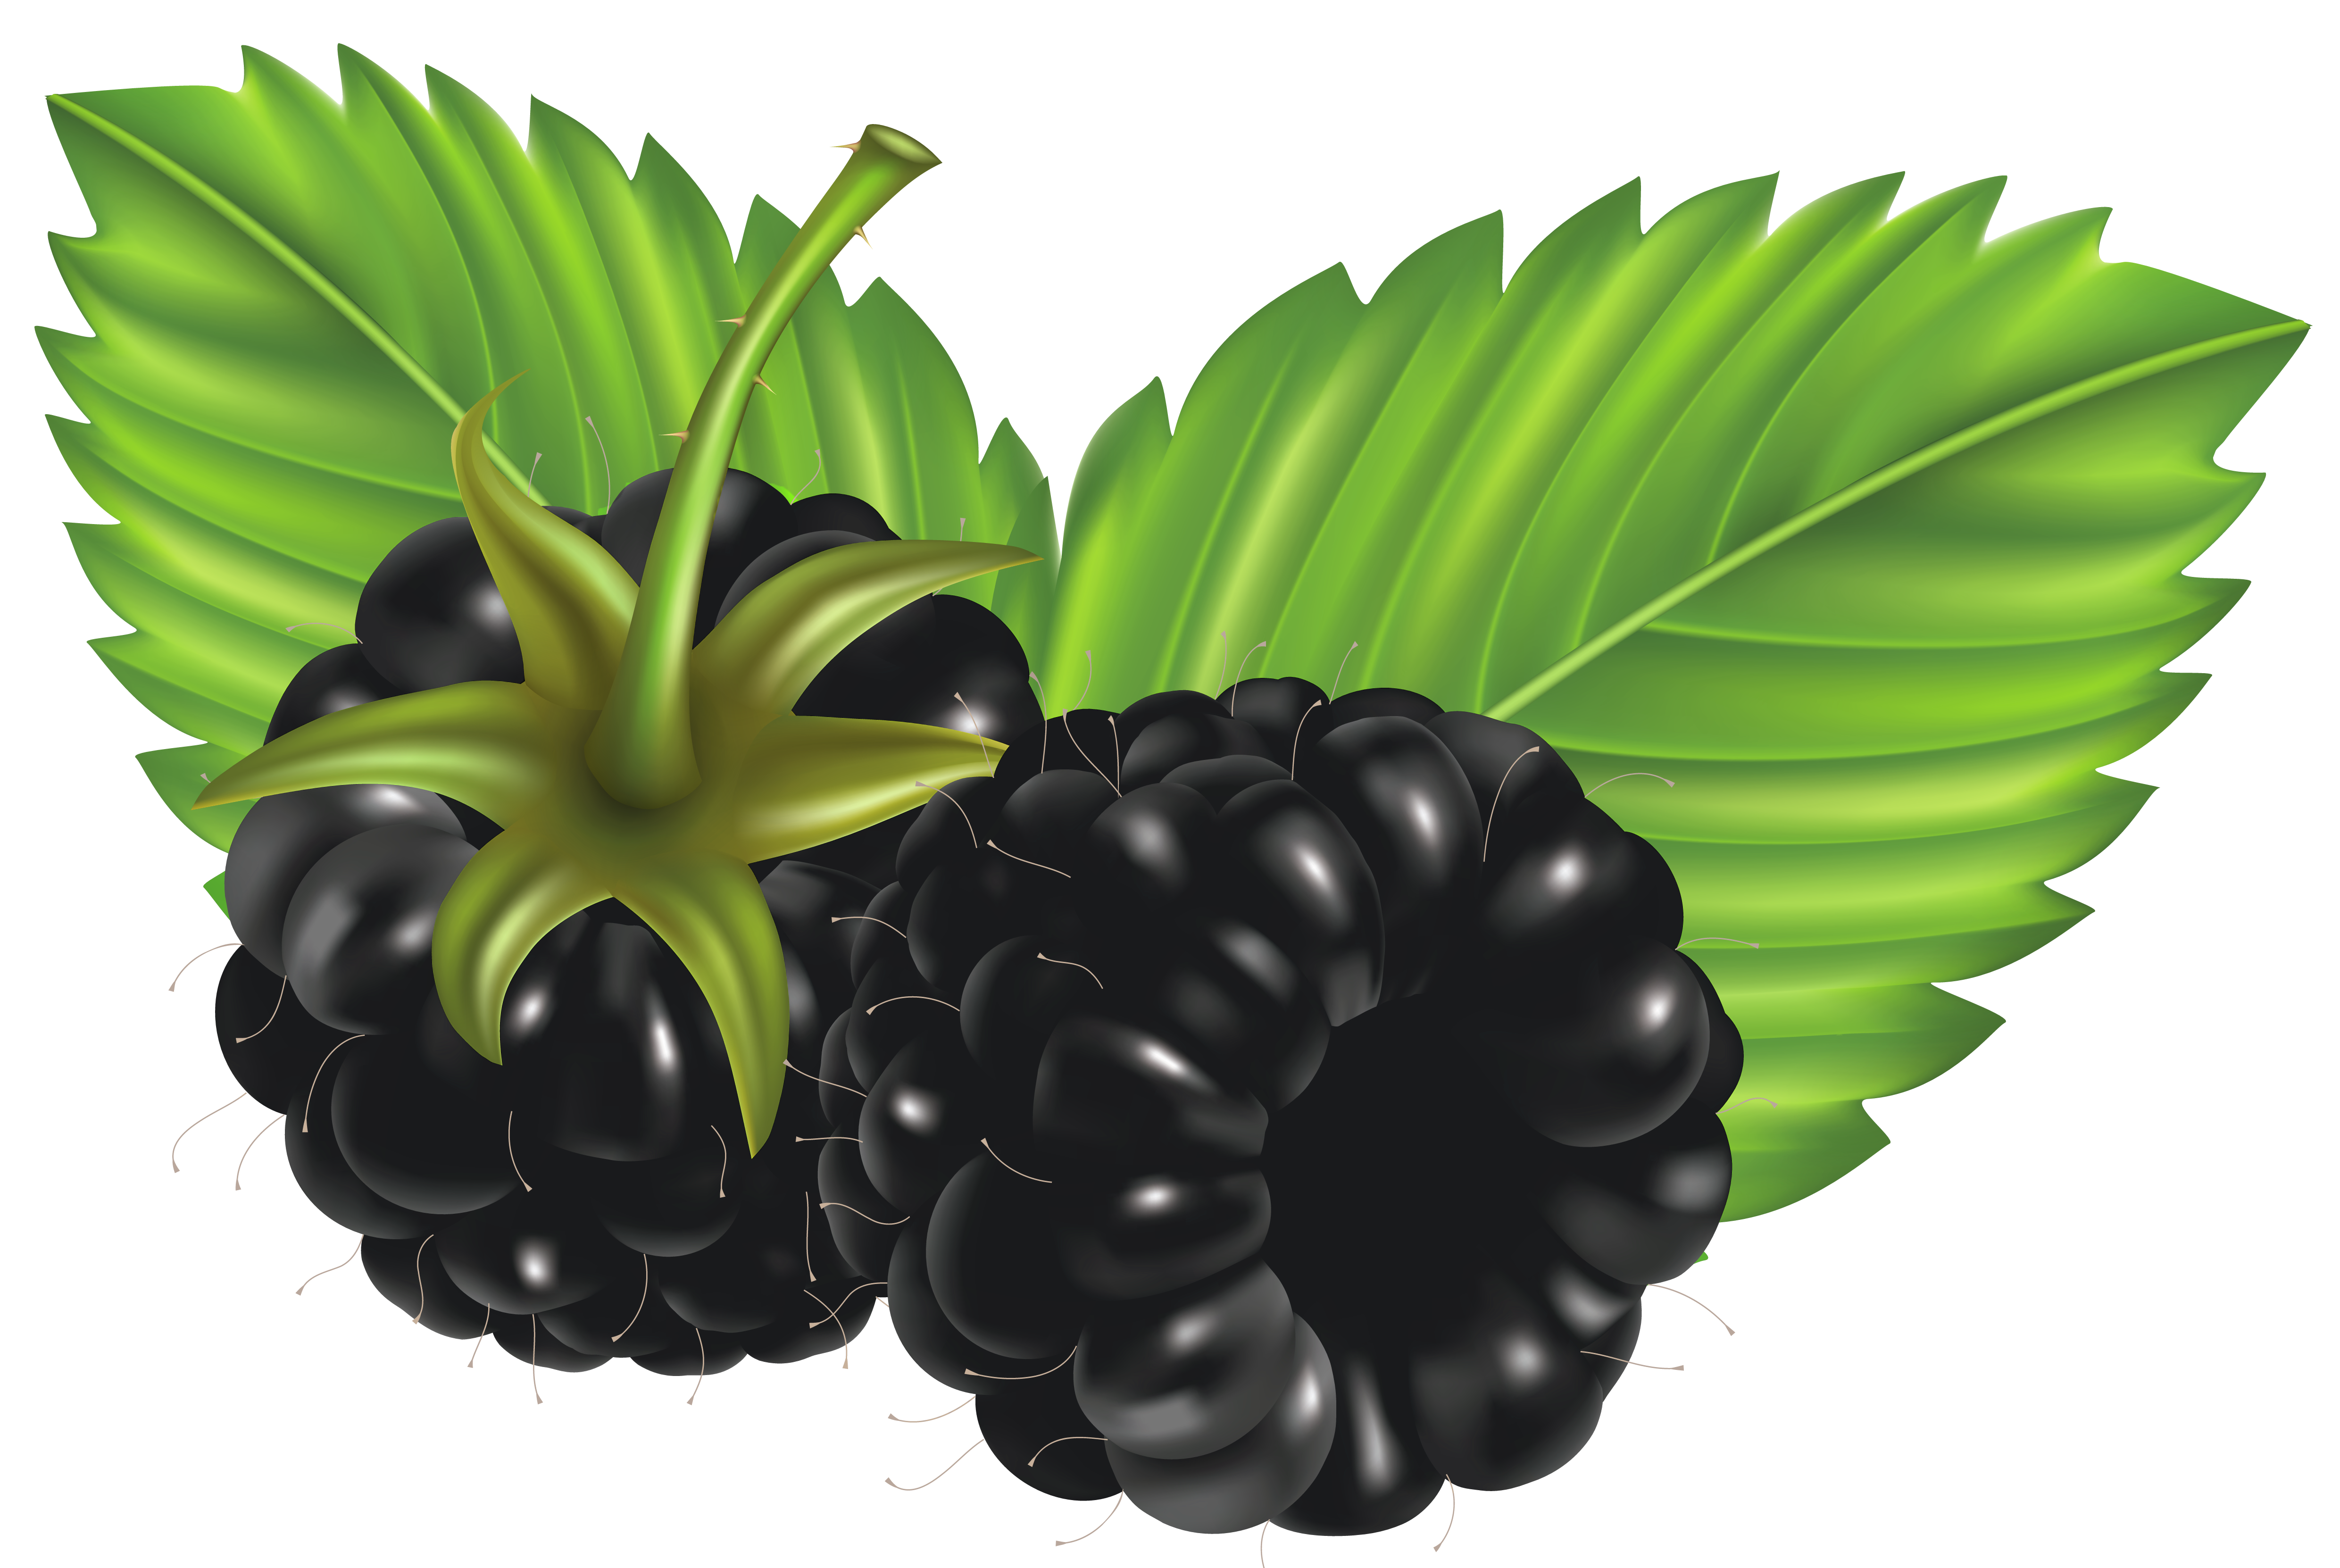 Free Blackberries Png, Download Free Clip Art, Free Clip Art.